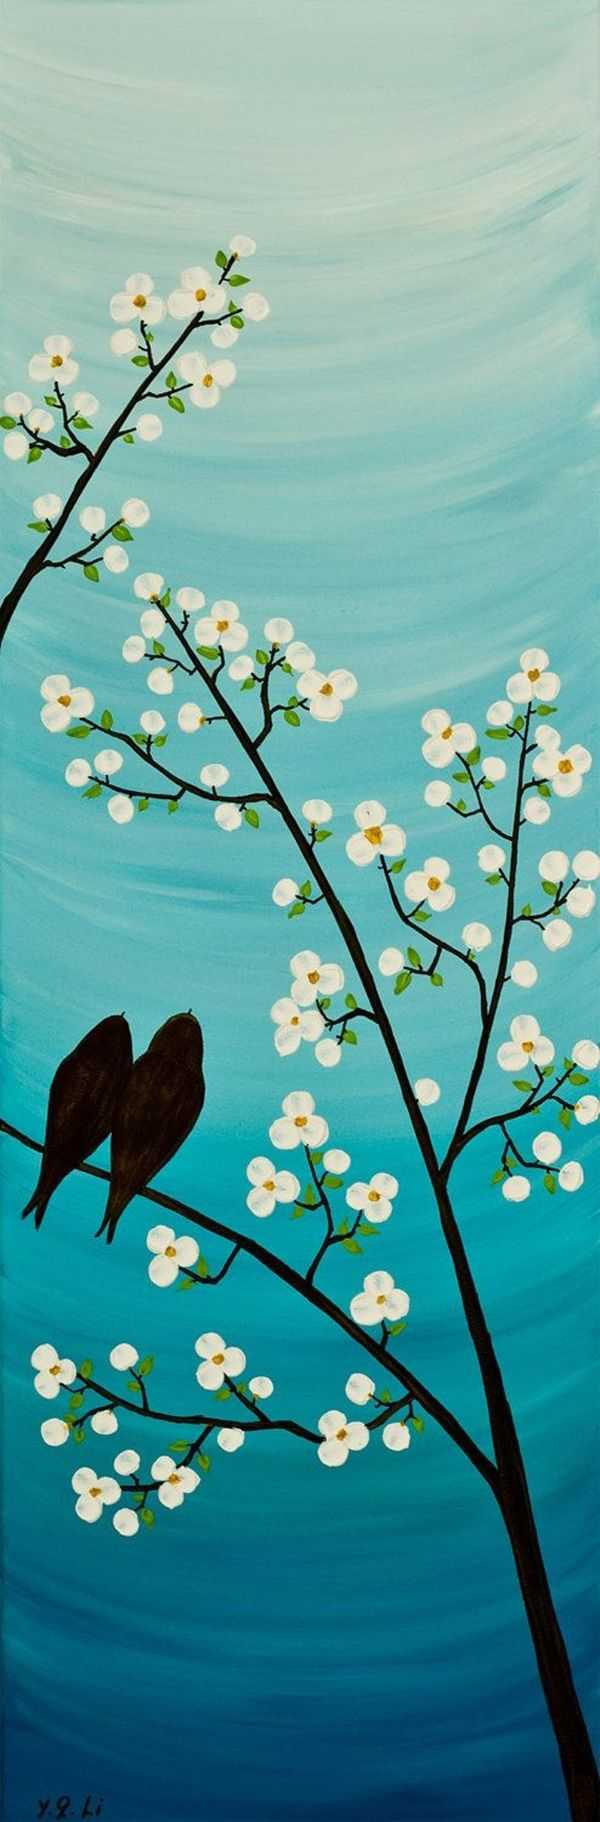 60 Easy And Simple Landscape Painting Ideas | •Draw• | Ιδέες για